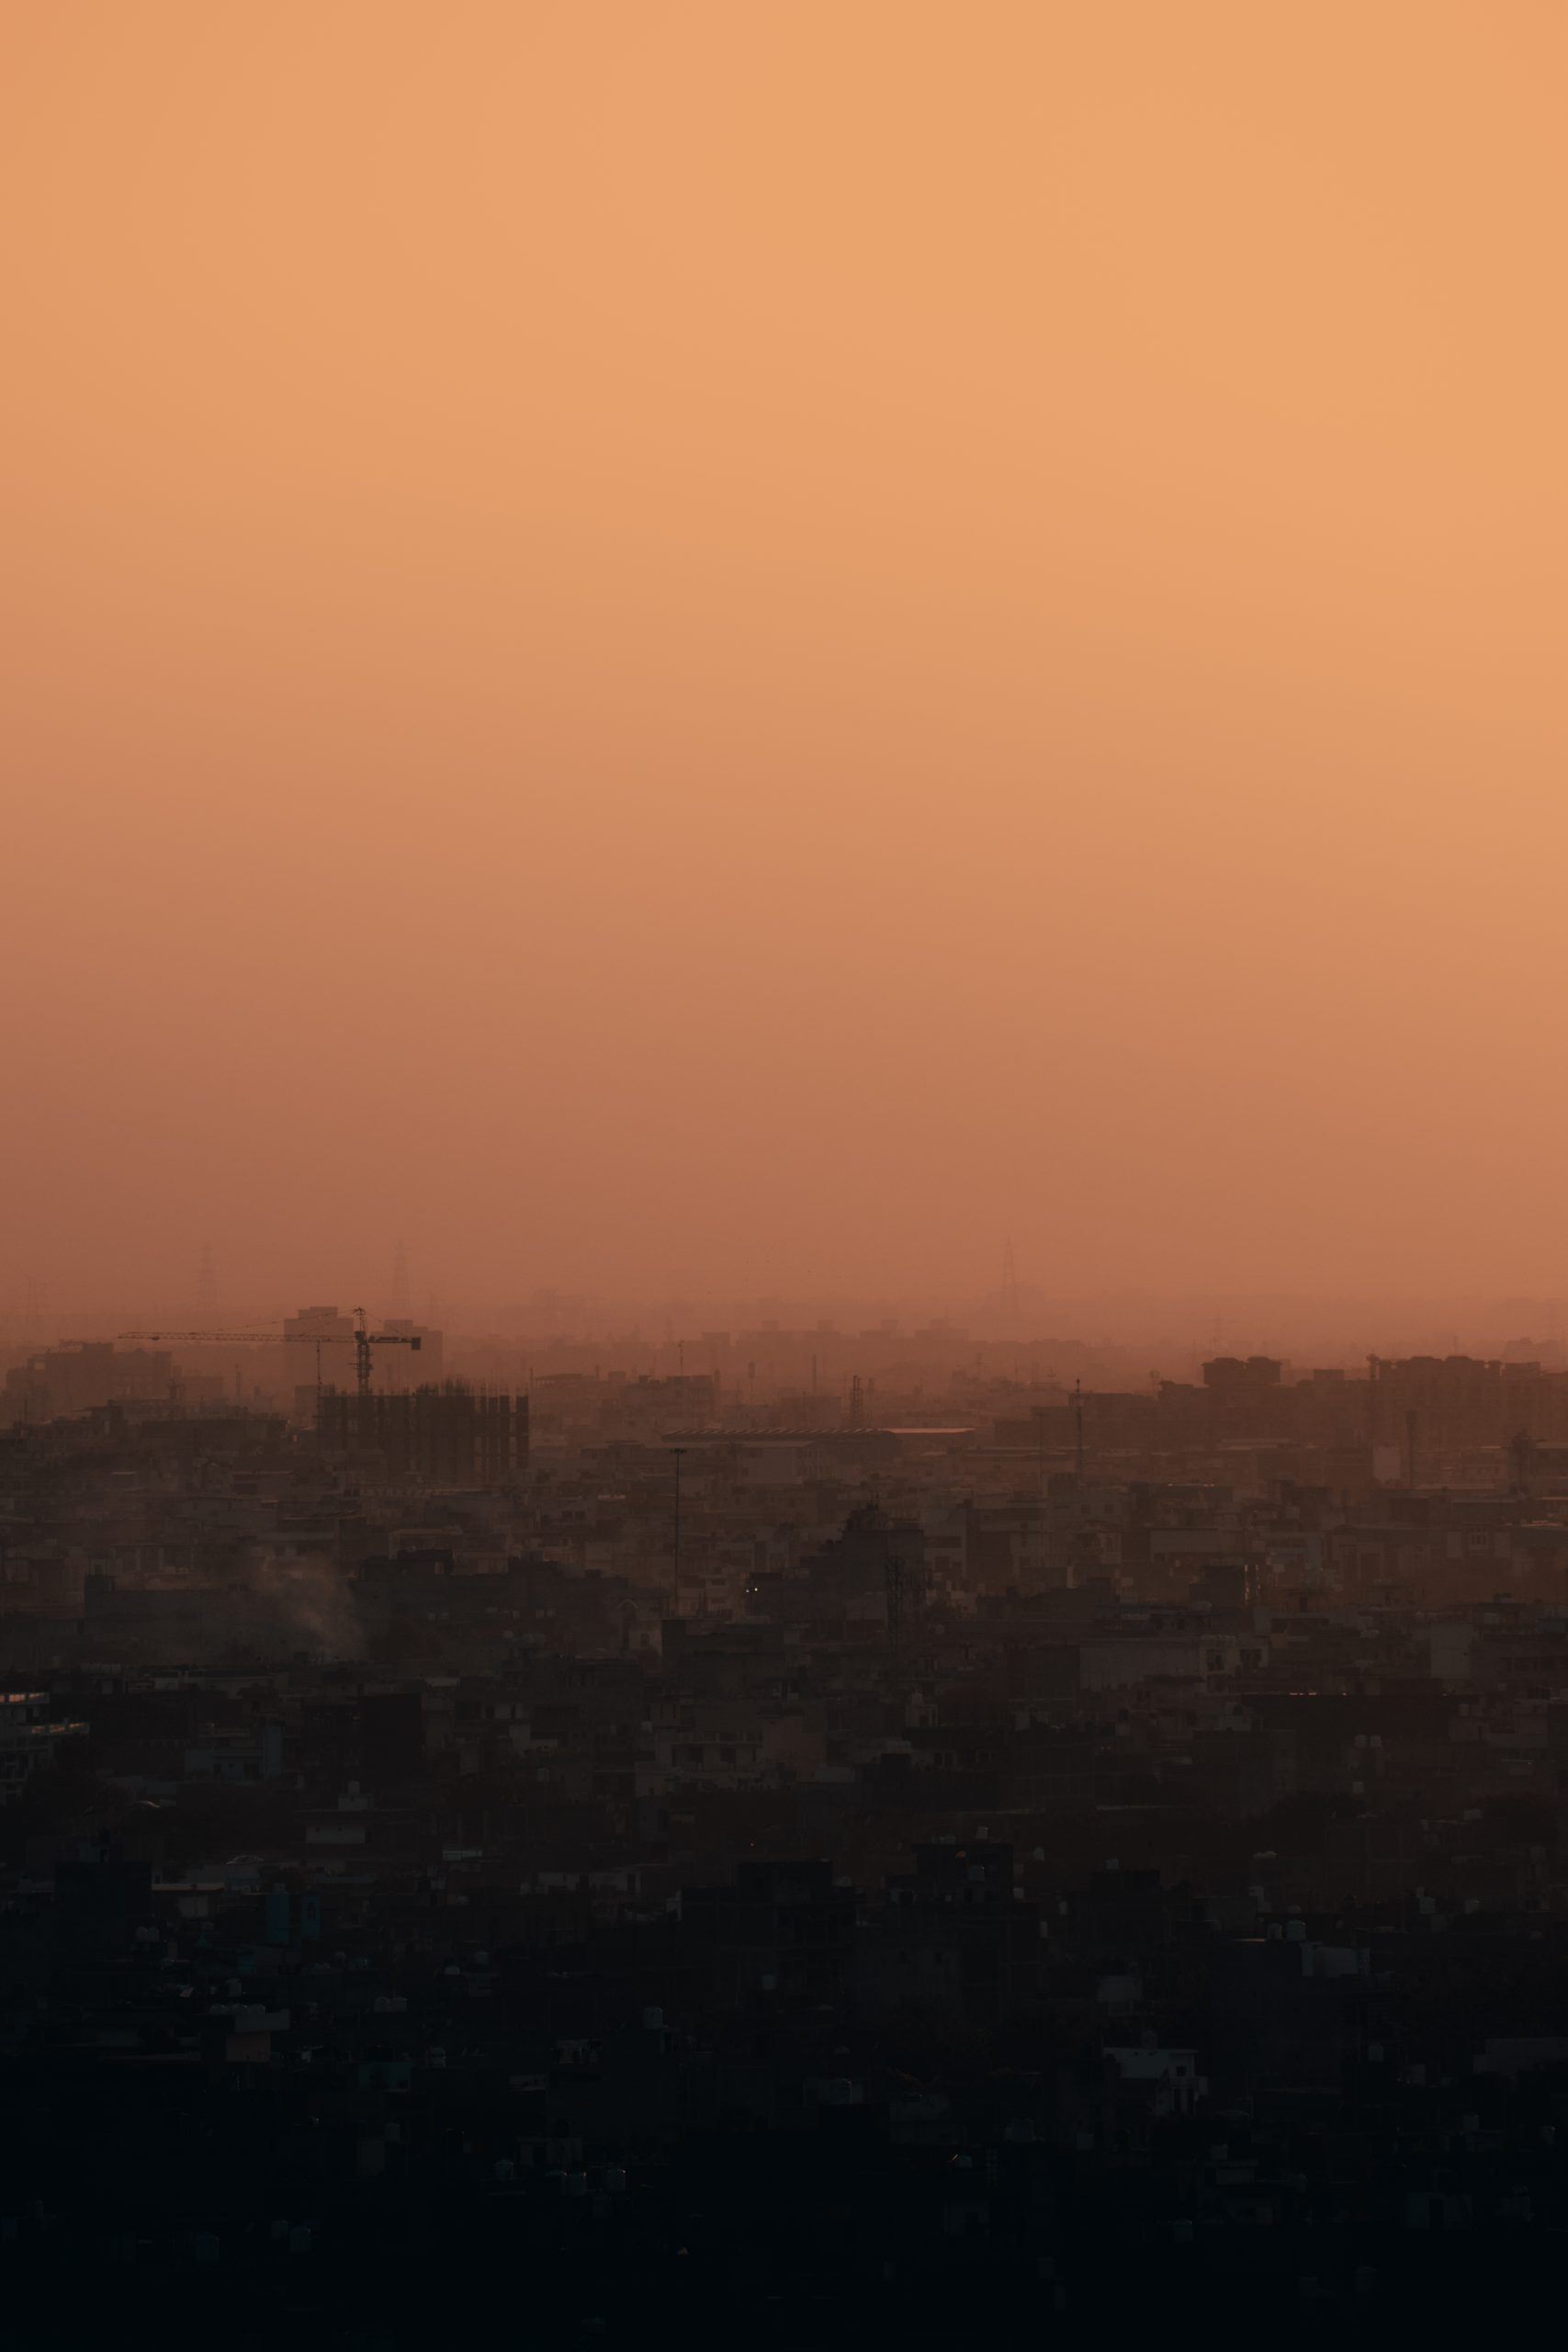 Polluted air of a city during evening